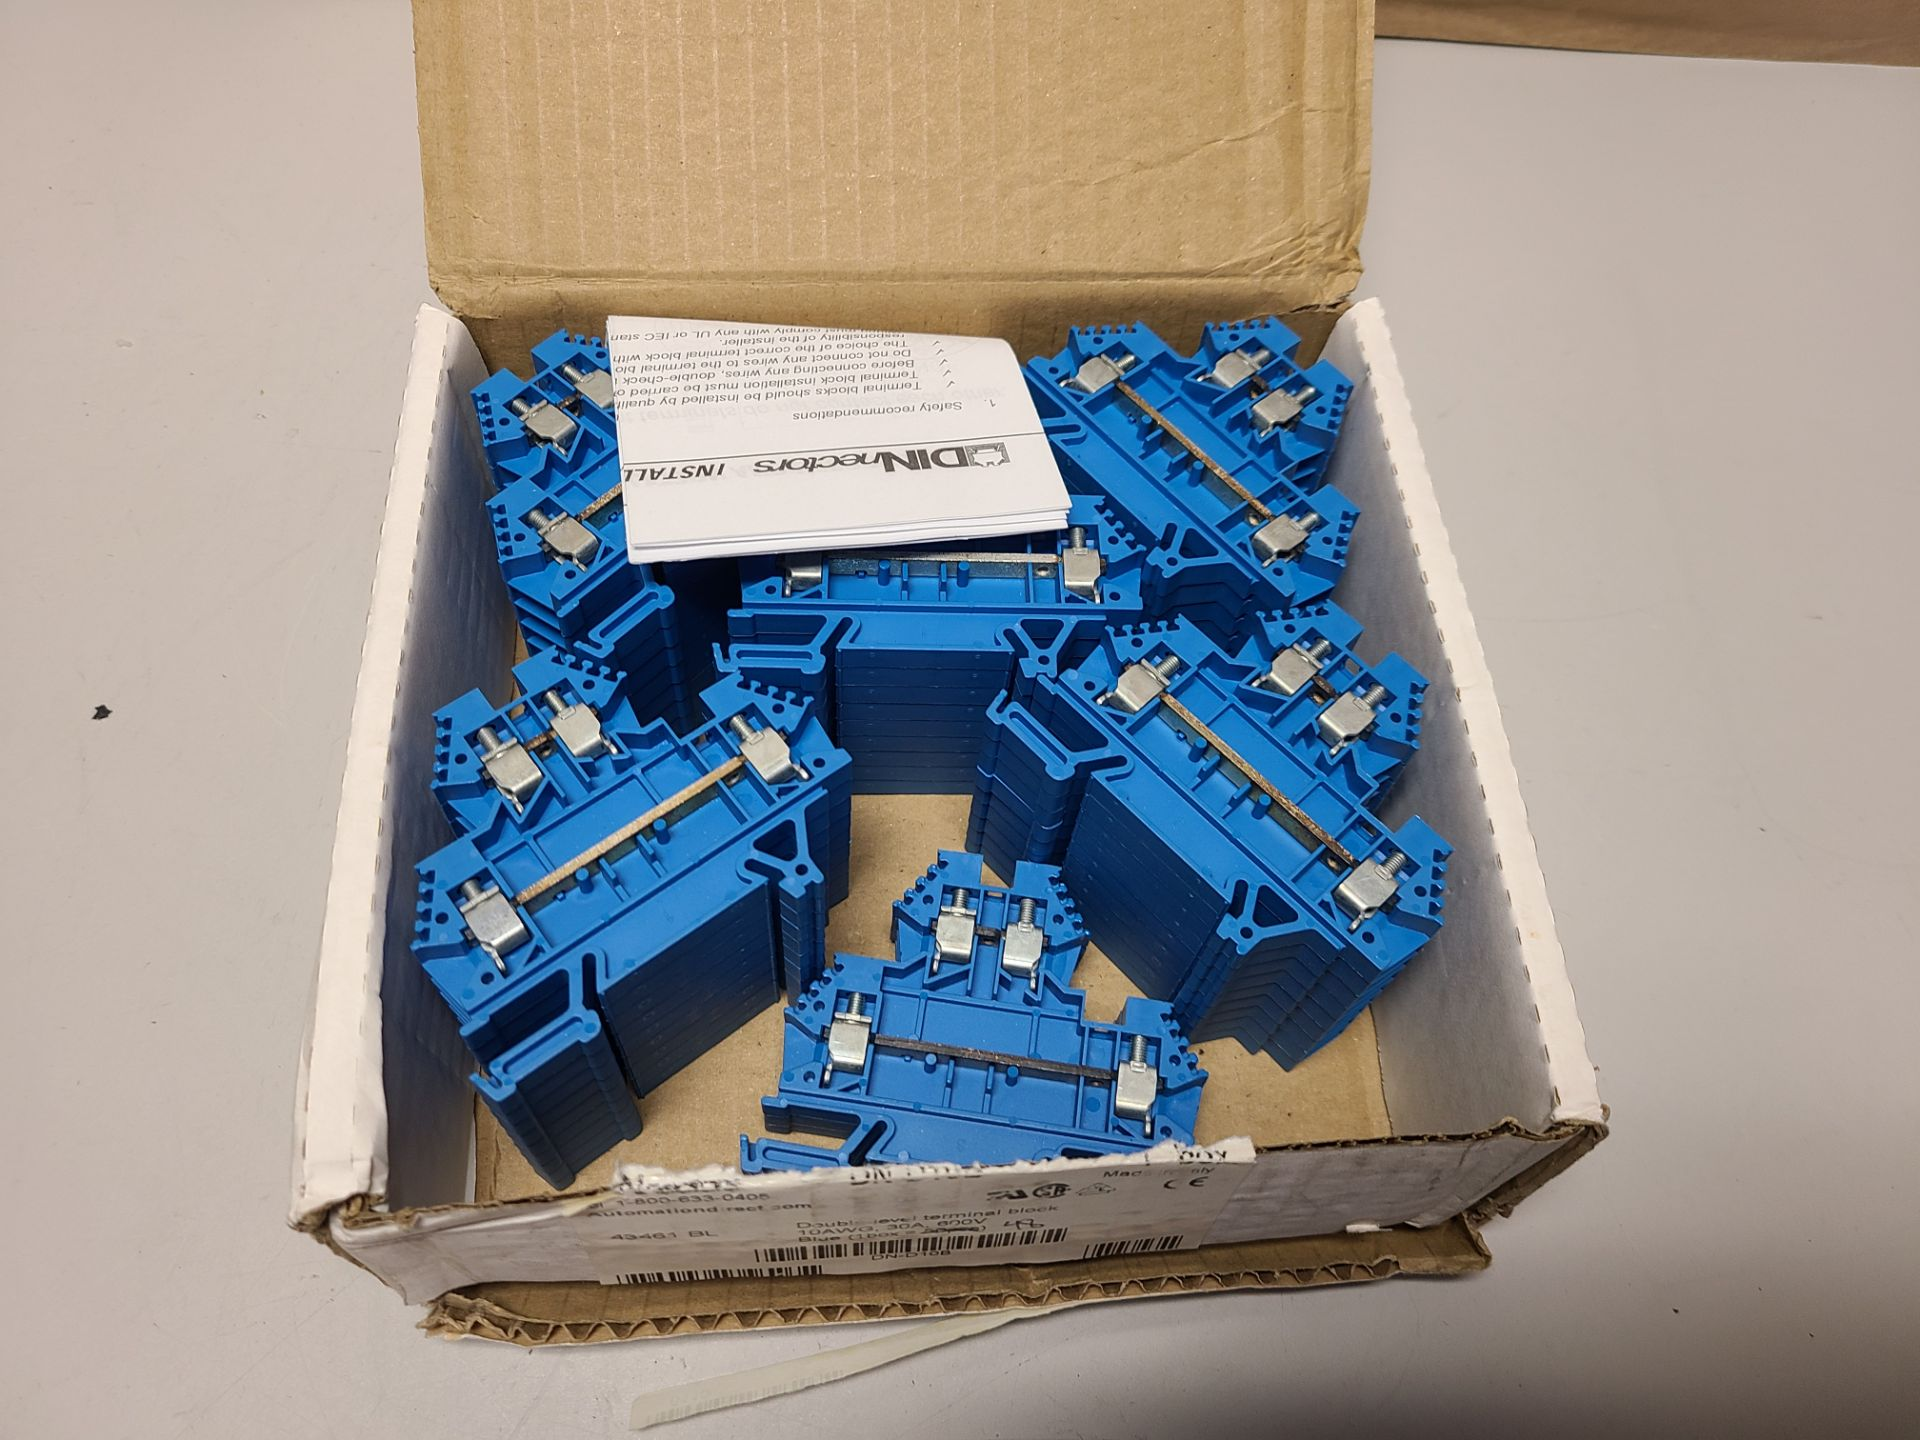 LOT OF NEW DINNECTORS DOUBLE LEVEL TERMINAL BLOCKS - Image 3 of 3